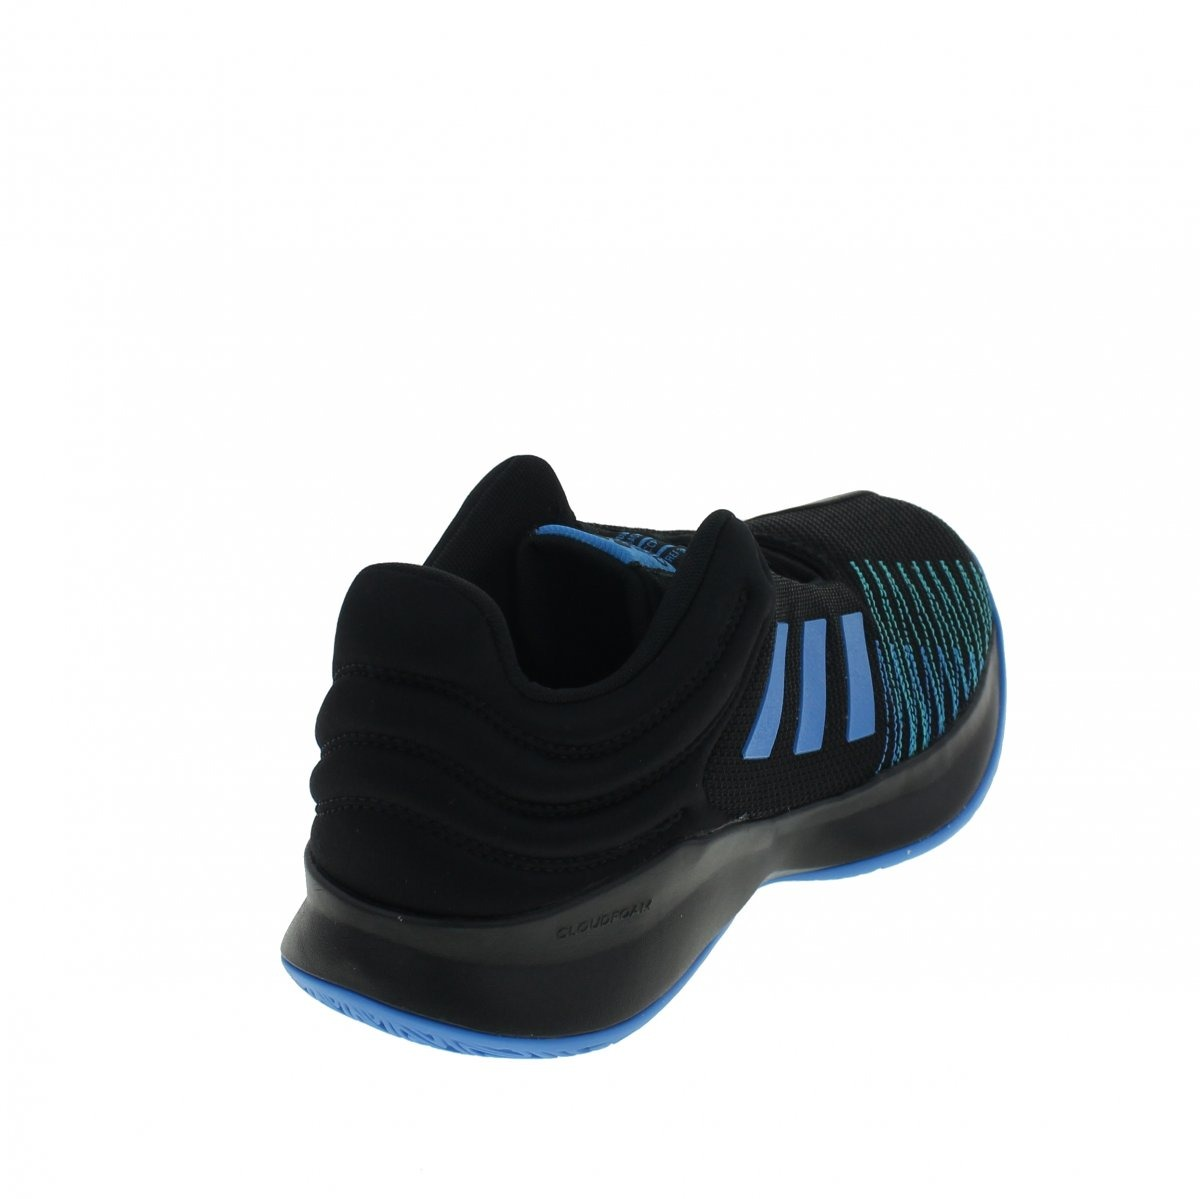 628bece5f4 Tenis adidas Pro Spark Low Masculino Basquete Original + Nf - R  299 ...